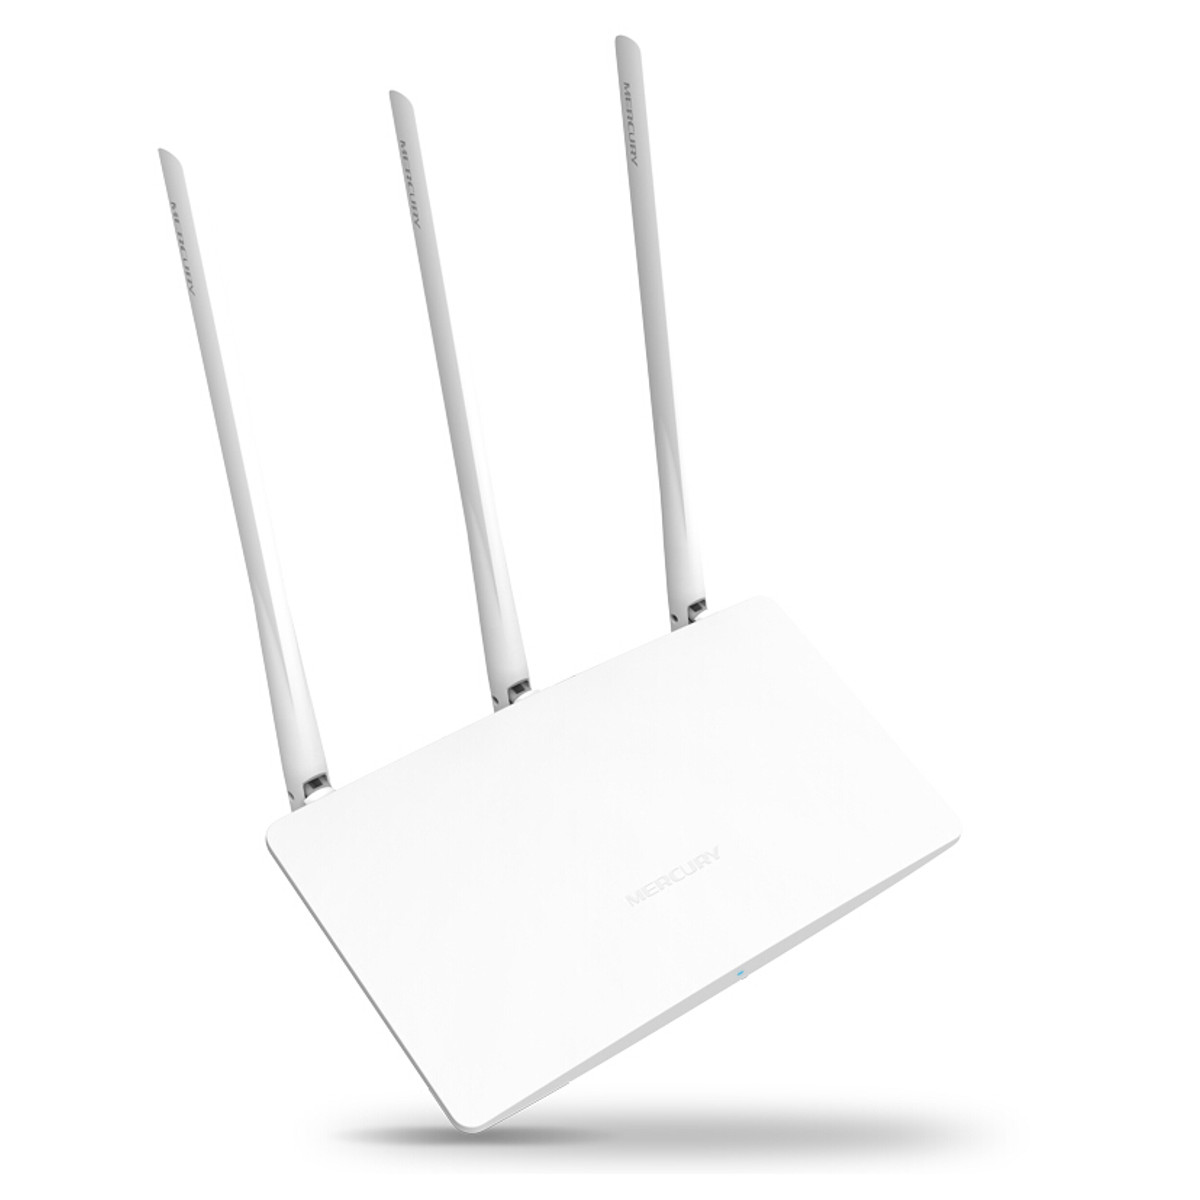 MW315R 300Mbps 2.4G Wireless WiFi Router with Smart 3 Antennas